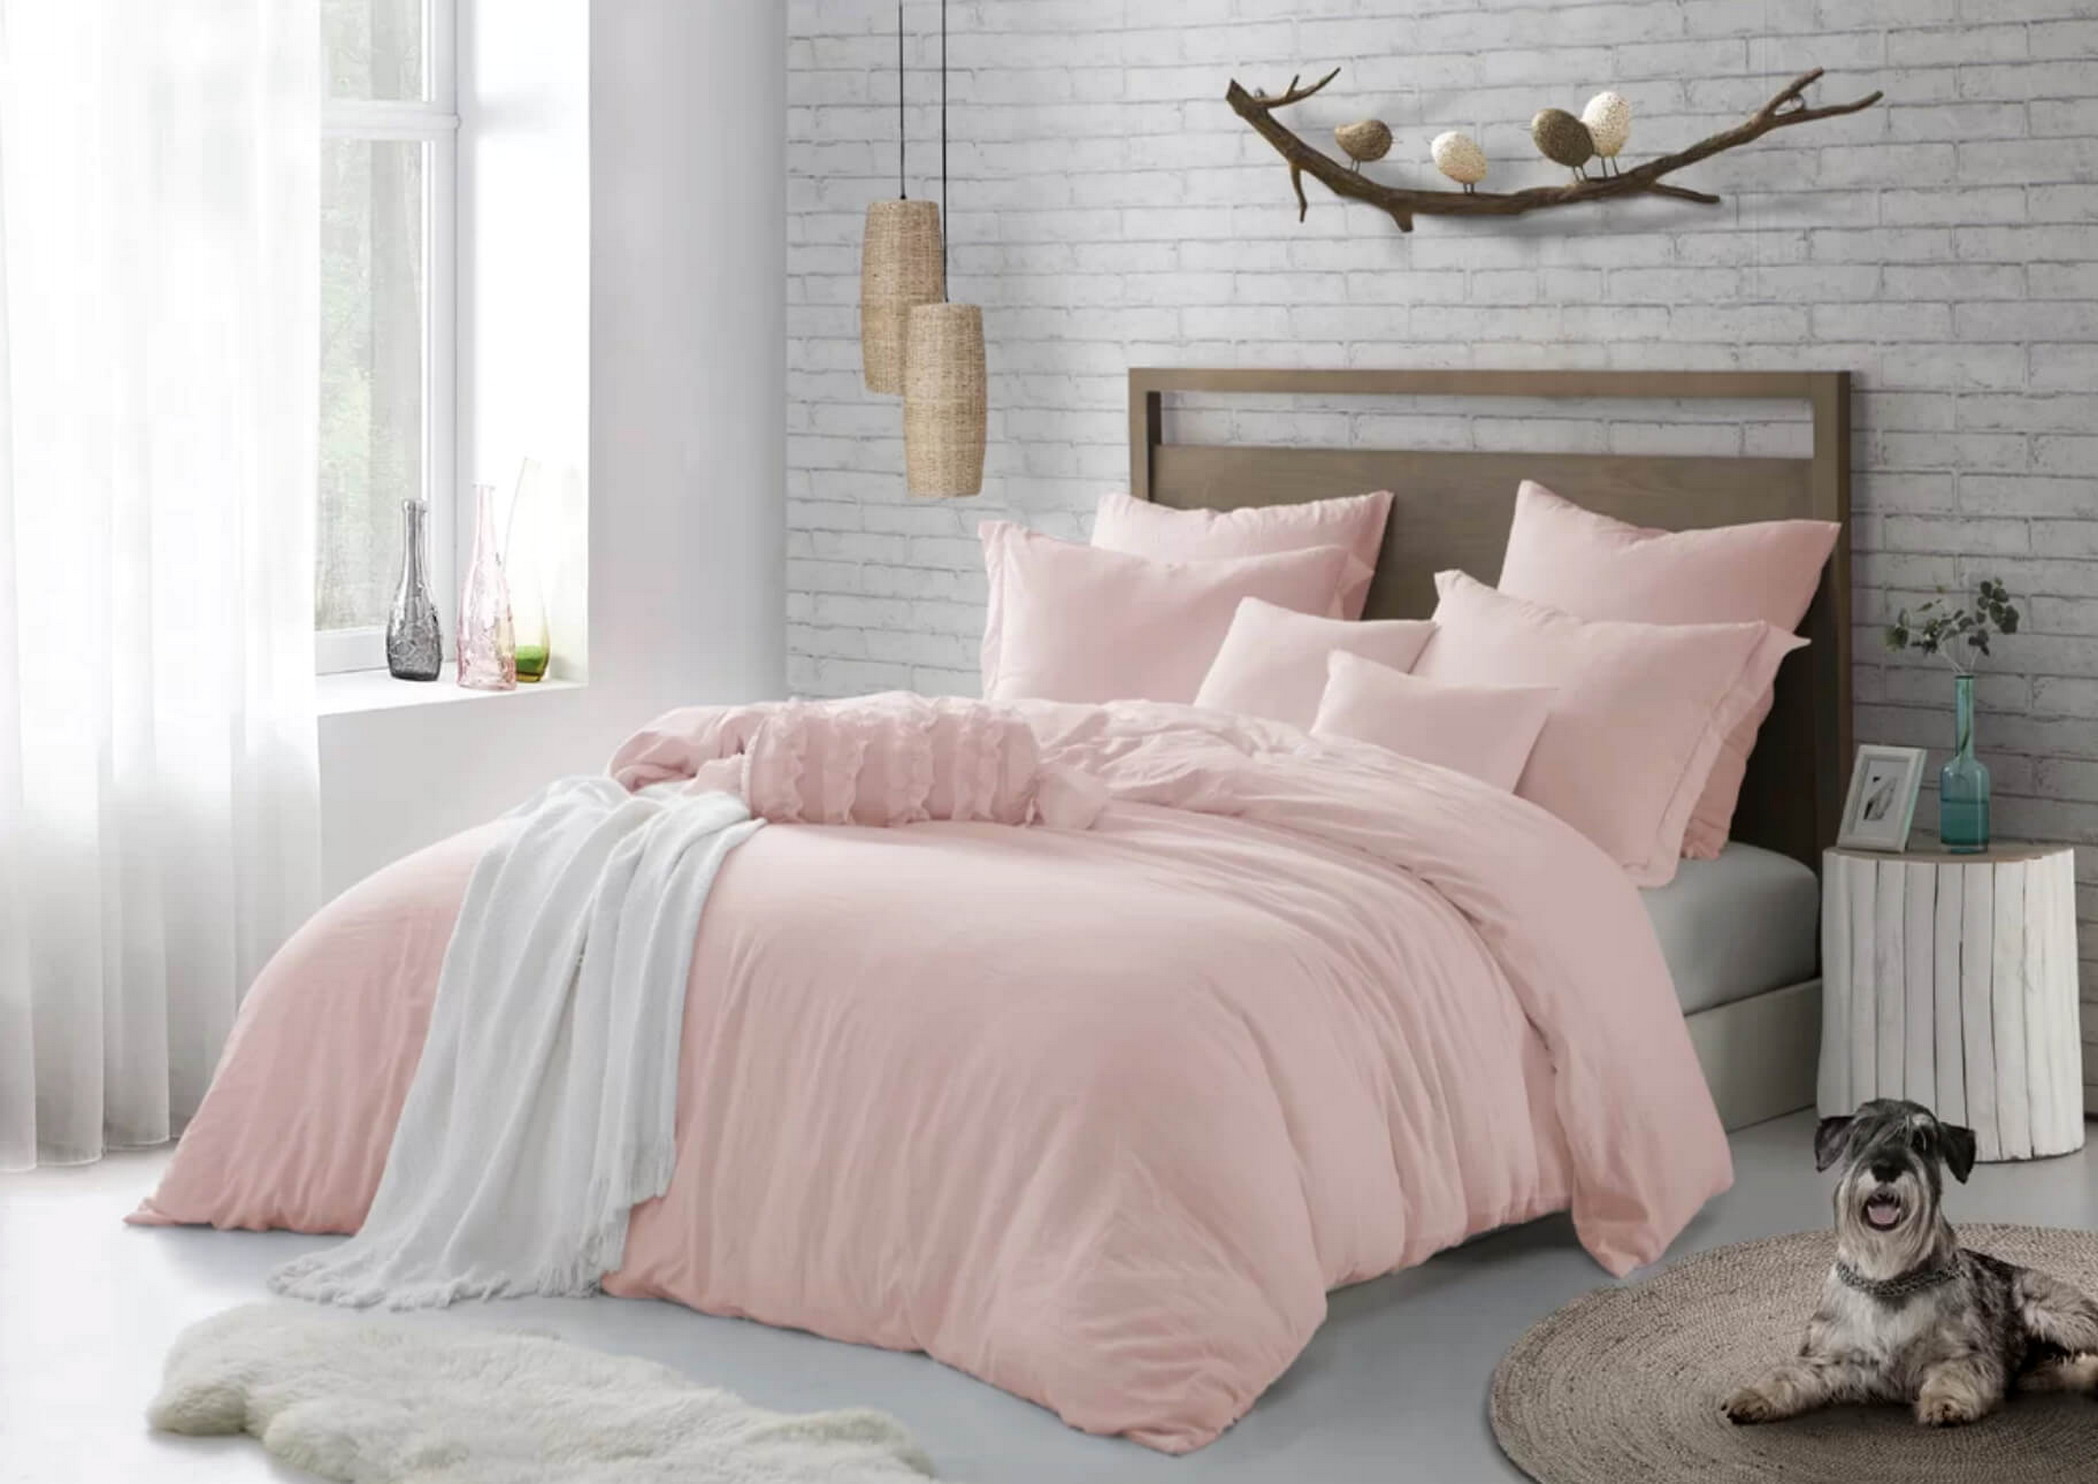 Color Wall Selection for Romantic Bedroom Decorating Ideas